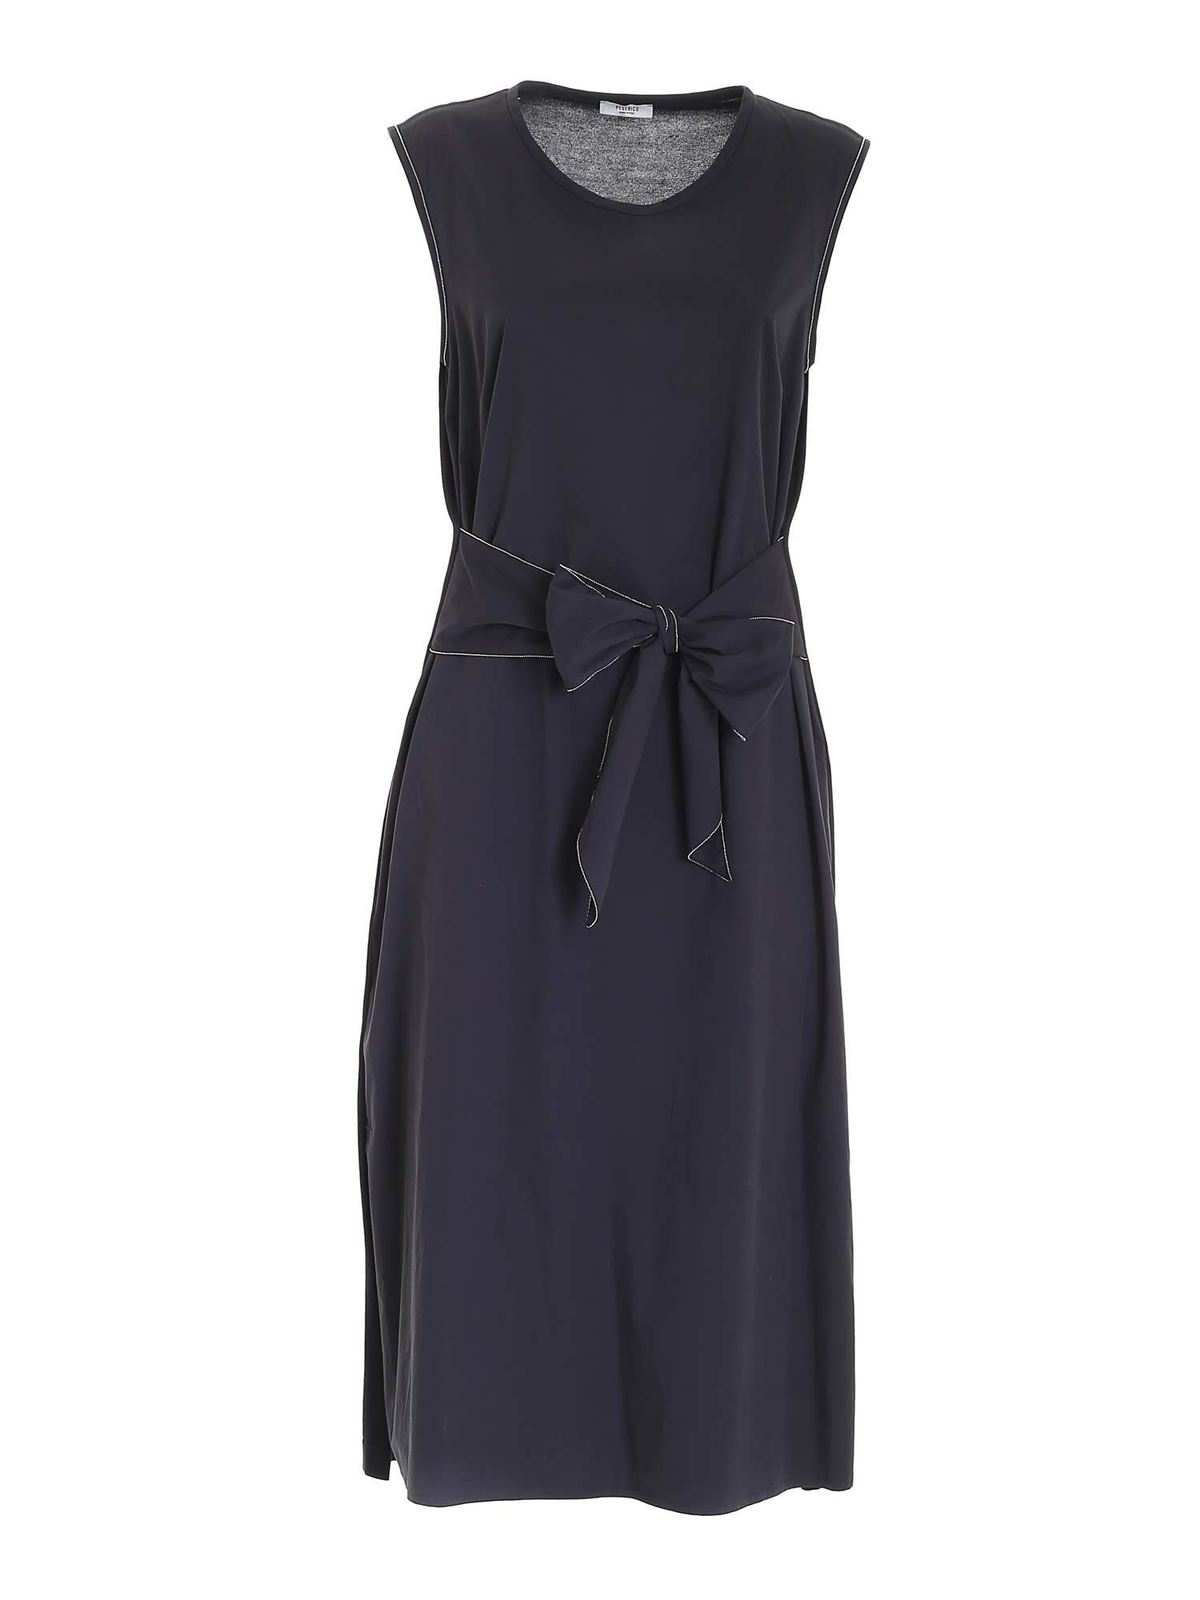 Peserico MICRO BEADS DRESS IN DARK BLUE